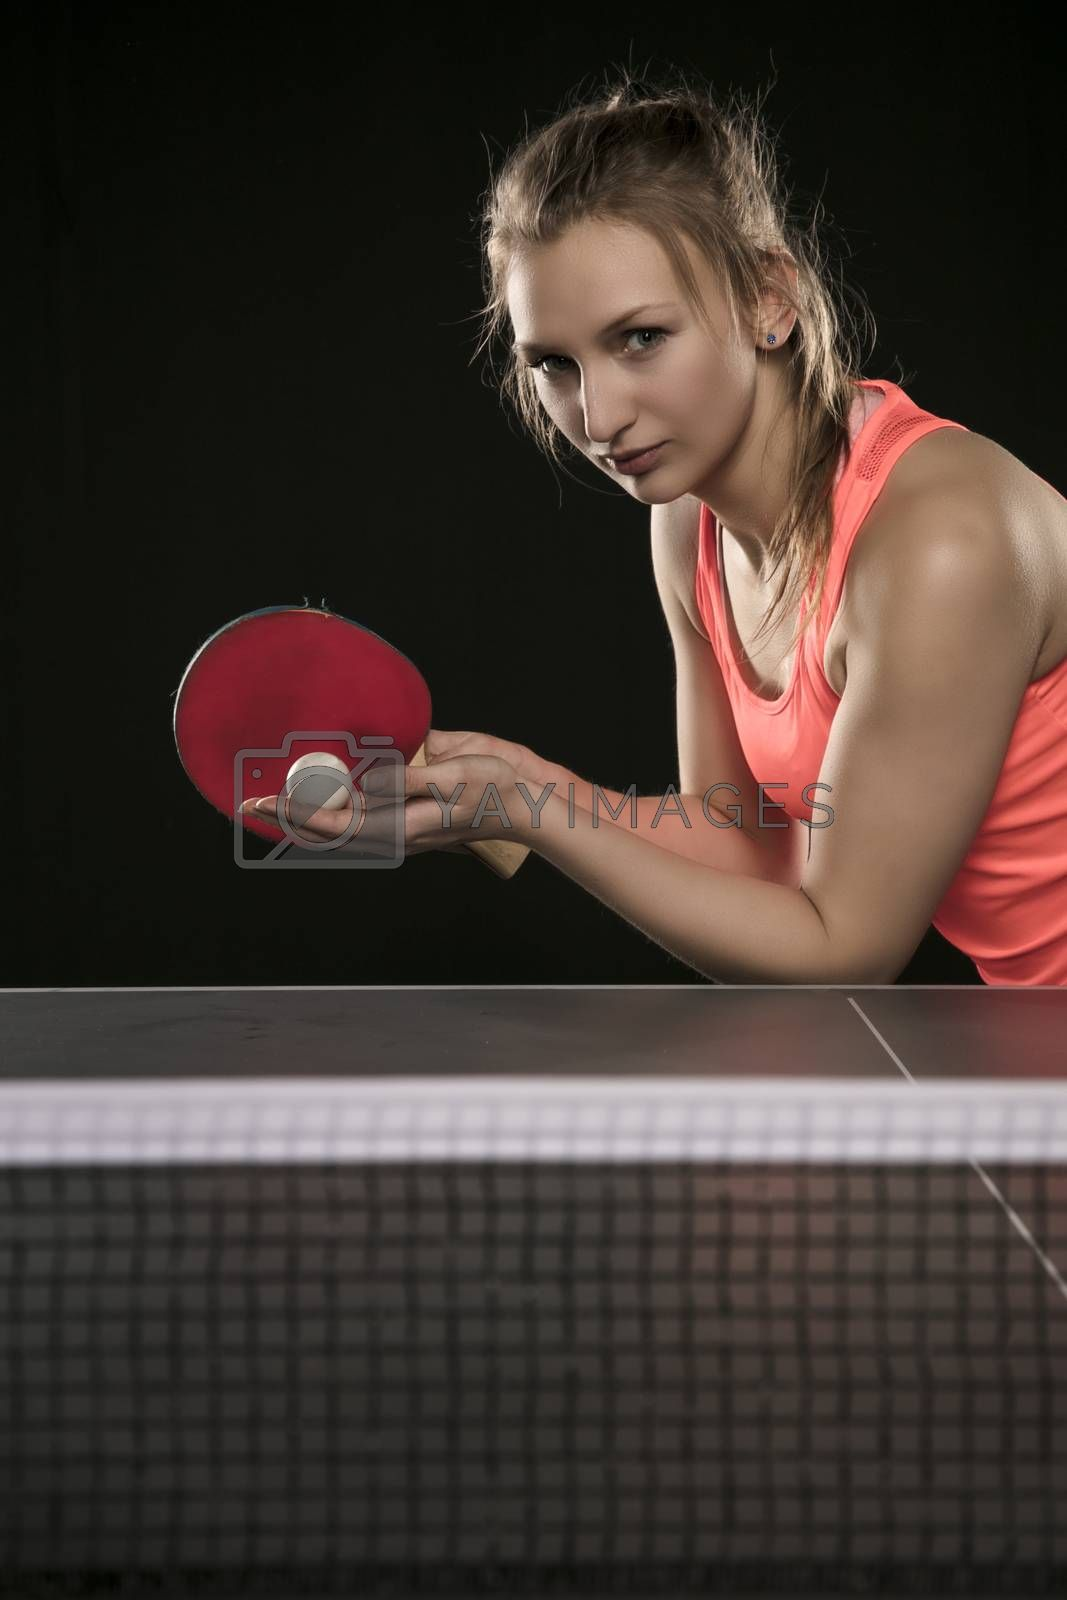 young beautiful athletic girl playing ping pong